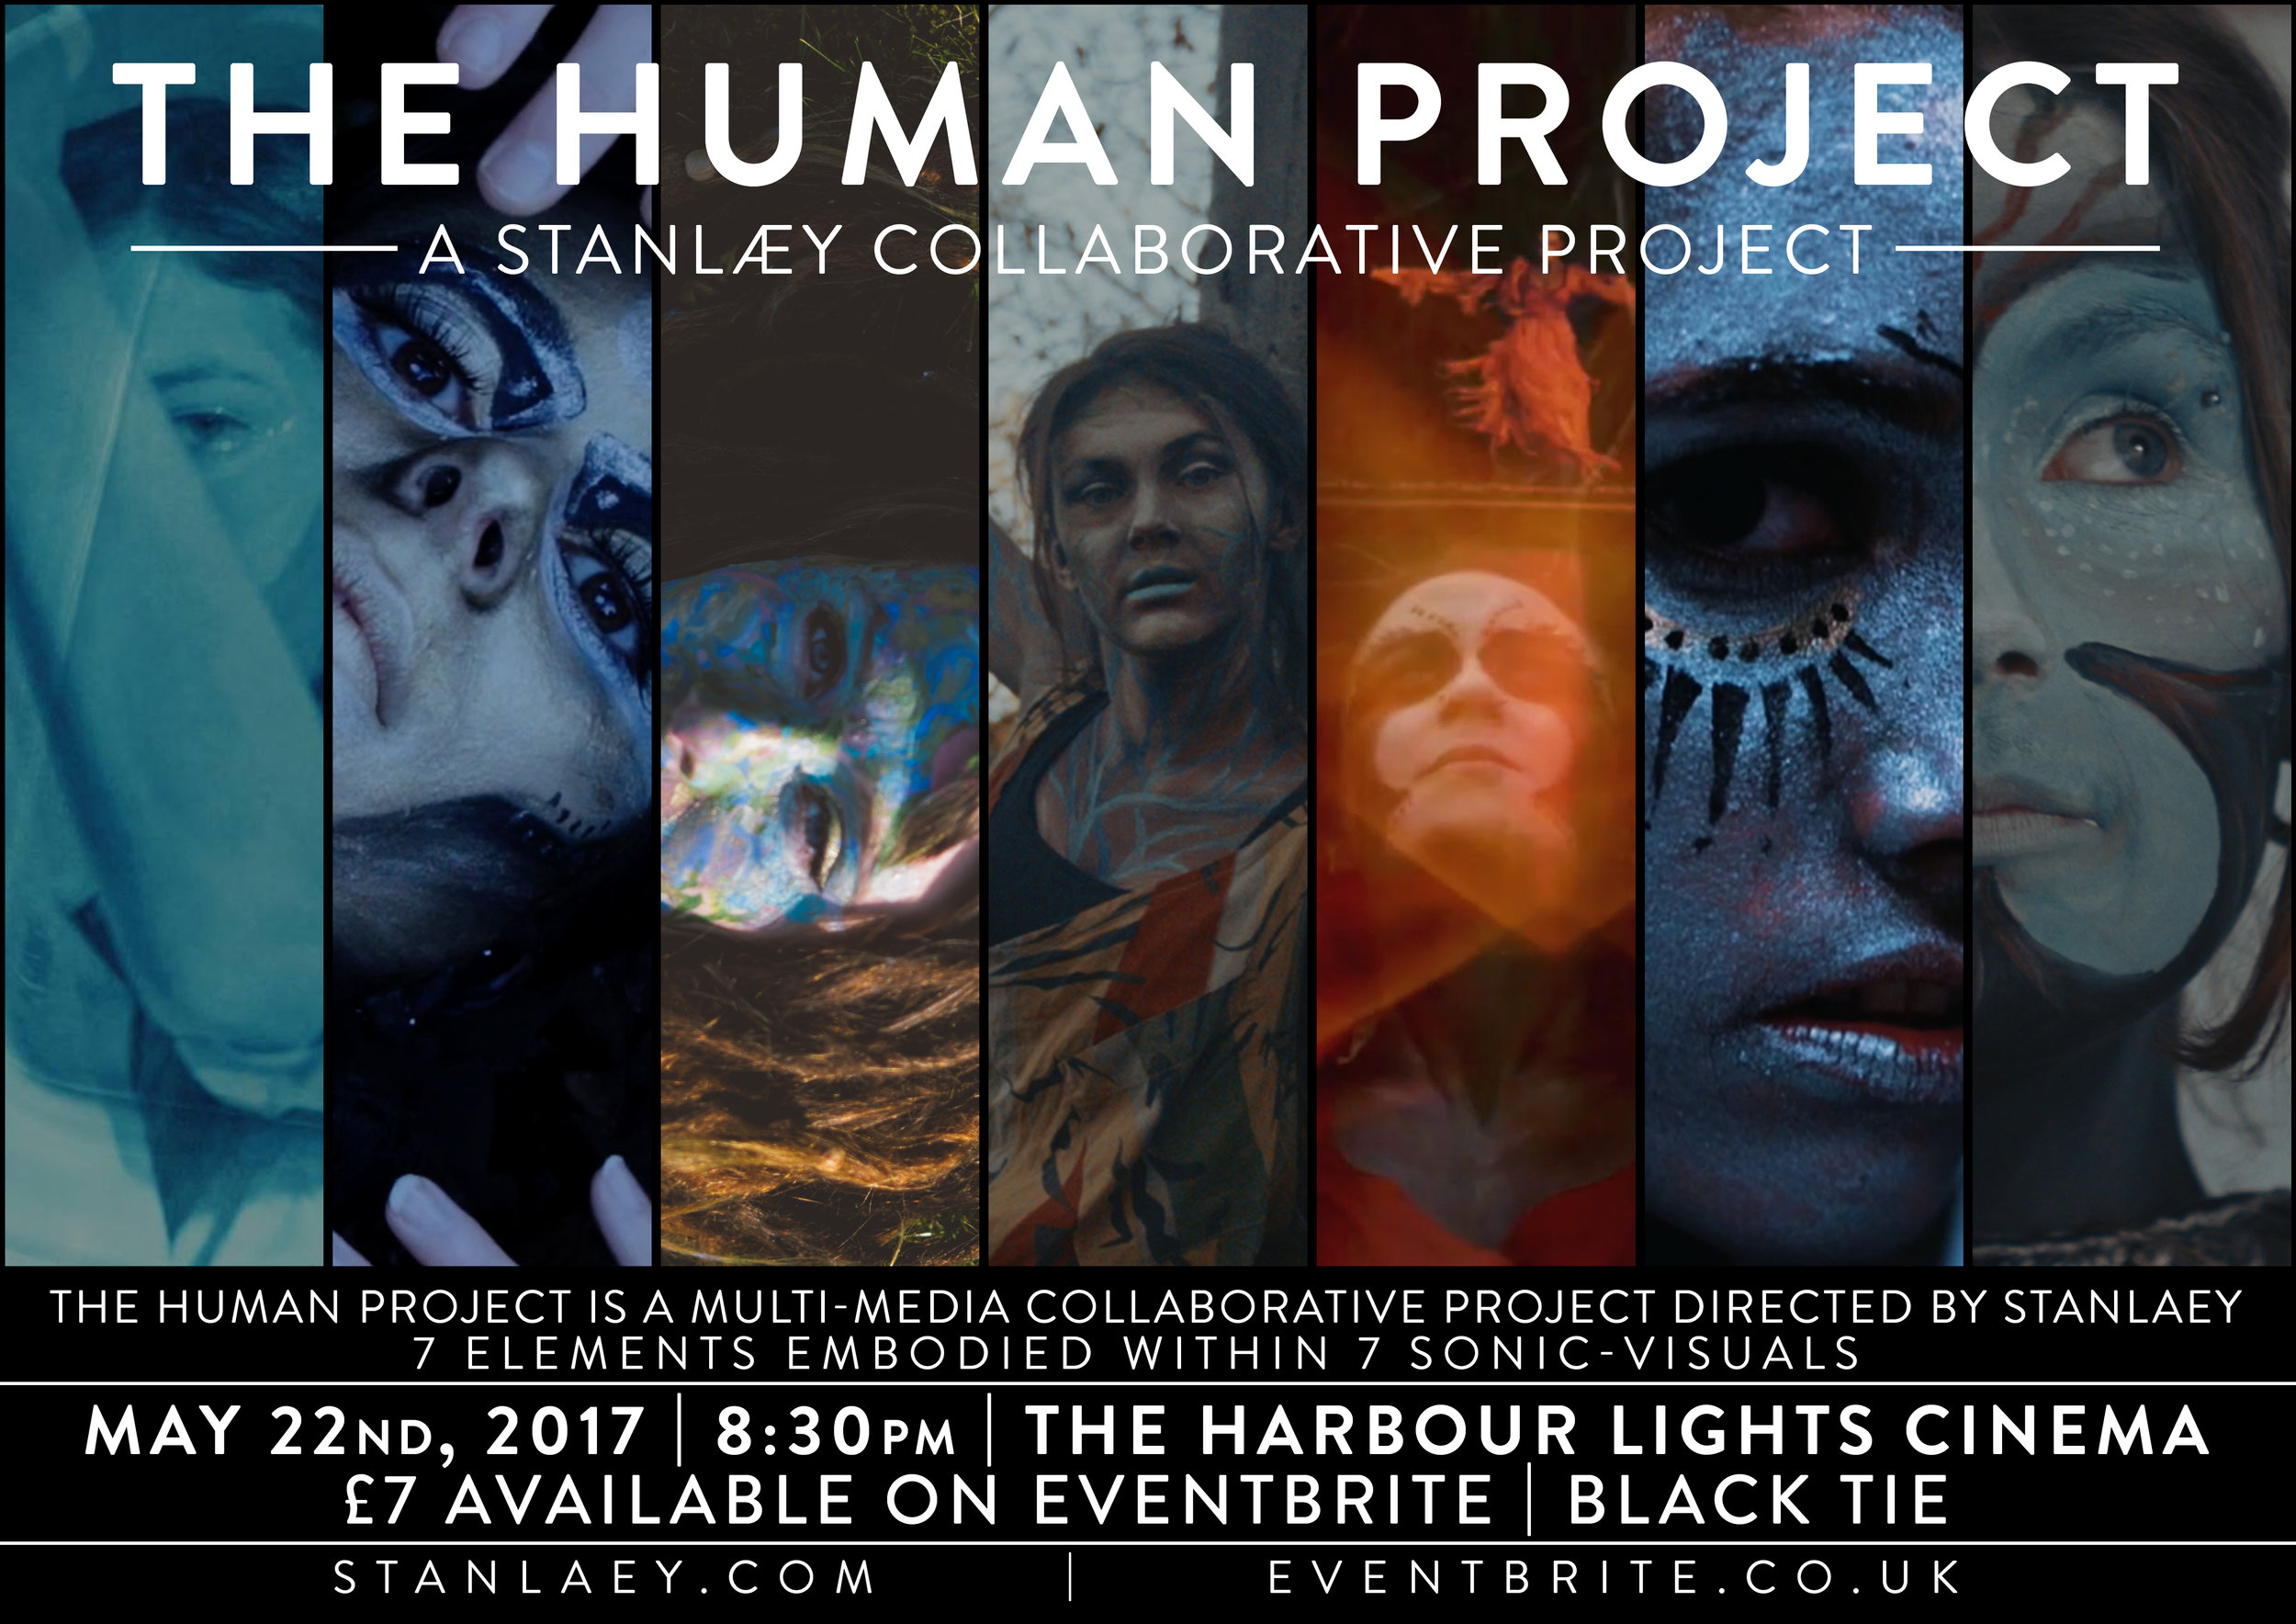 THE_HUMAN_PROJECT_STANLÆY